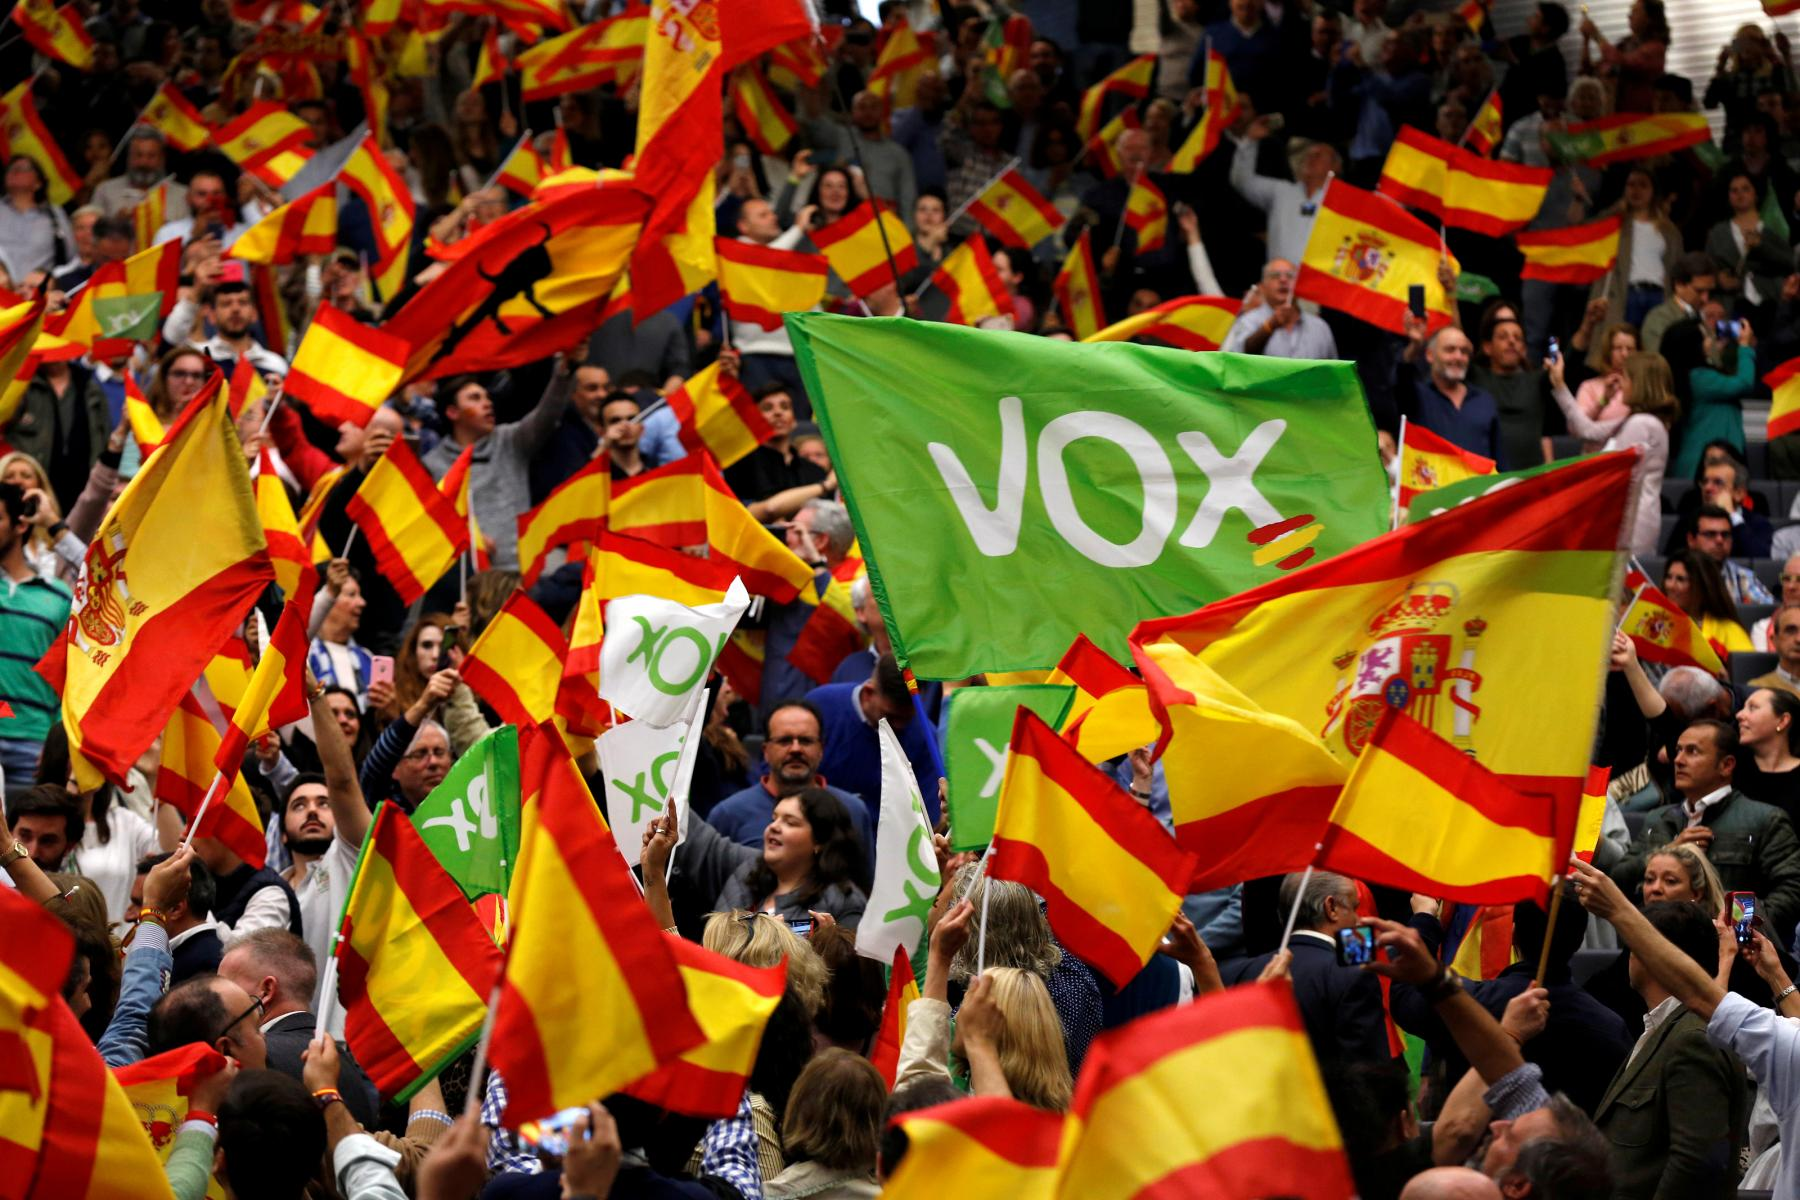 Supporters of the Spain's far-right party VOX wave Spanish flags as they attend an electoral rally ahead of general elections in the Andalusian capital of Seville